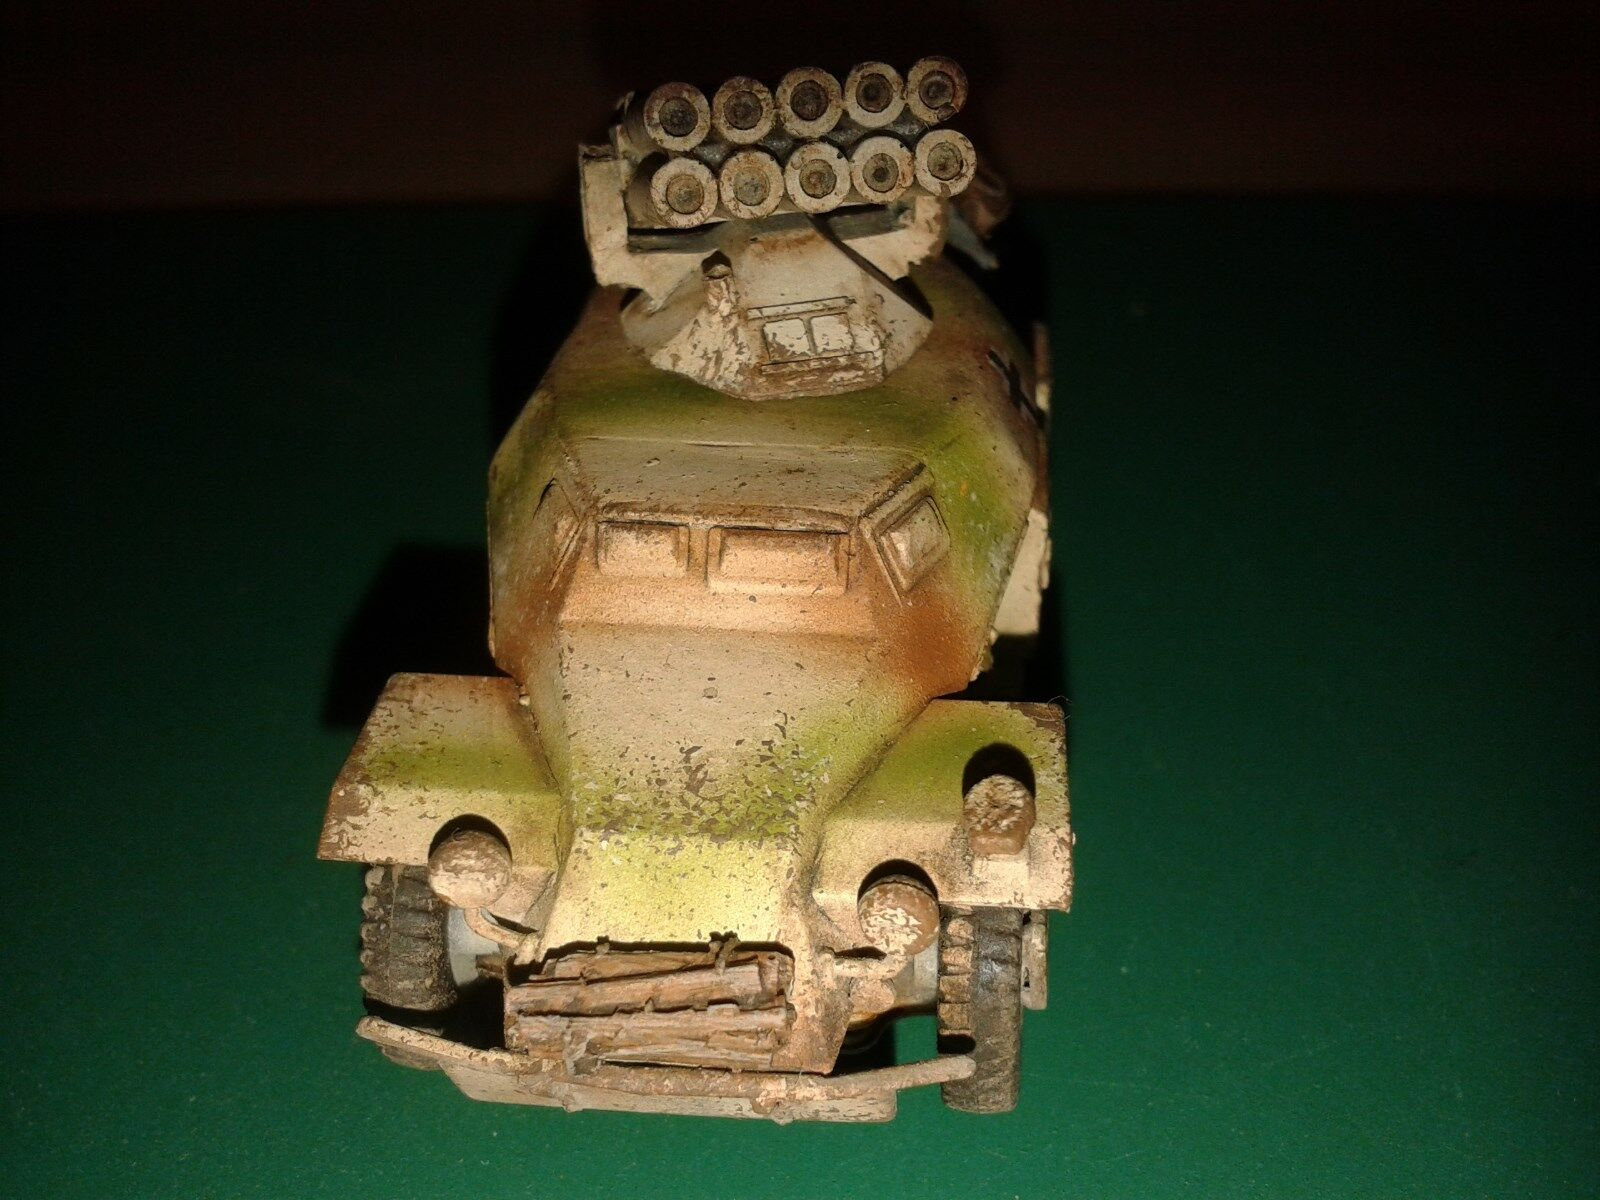 Expertly built & painted 1 72 Sd Kfz 222 Panzerwerfer